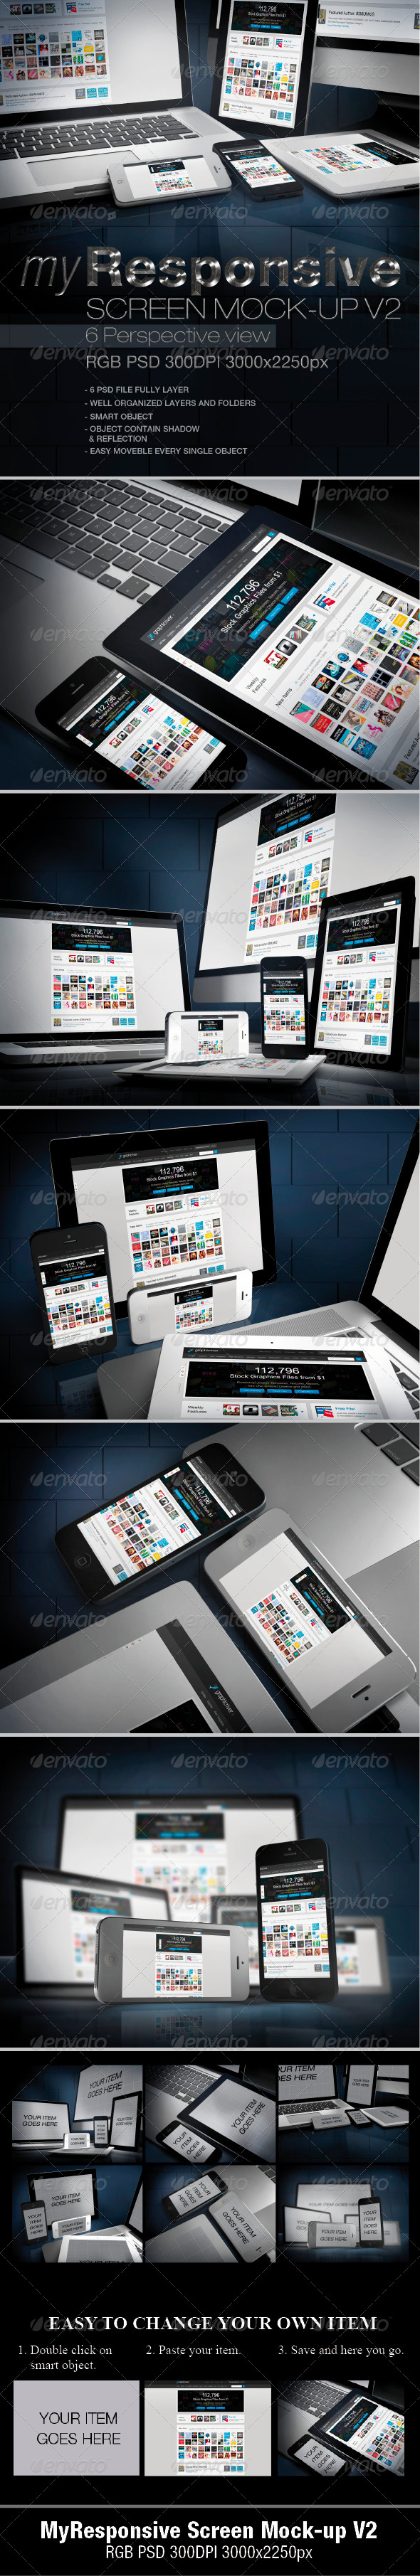 GraphicRiver myResponsive screen mock-up V2 4742033